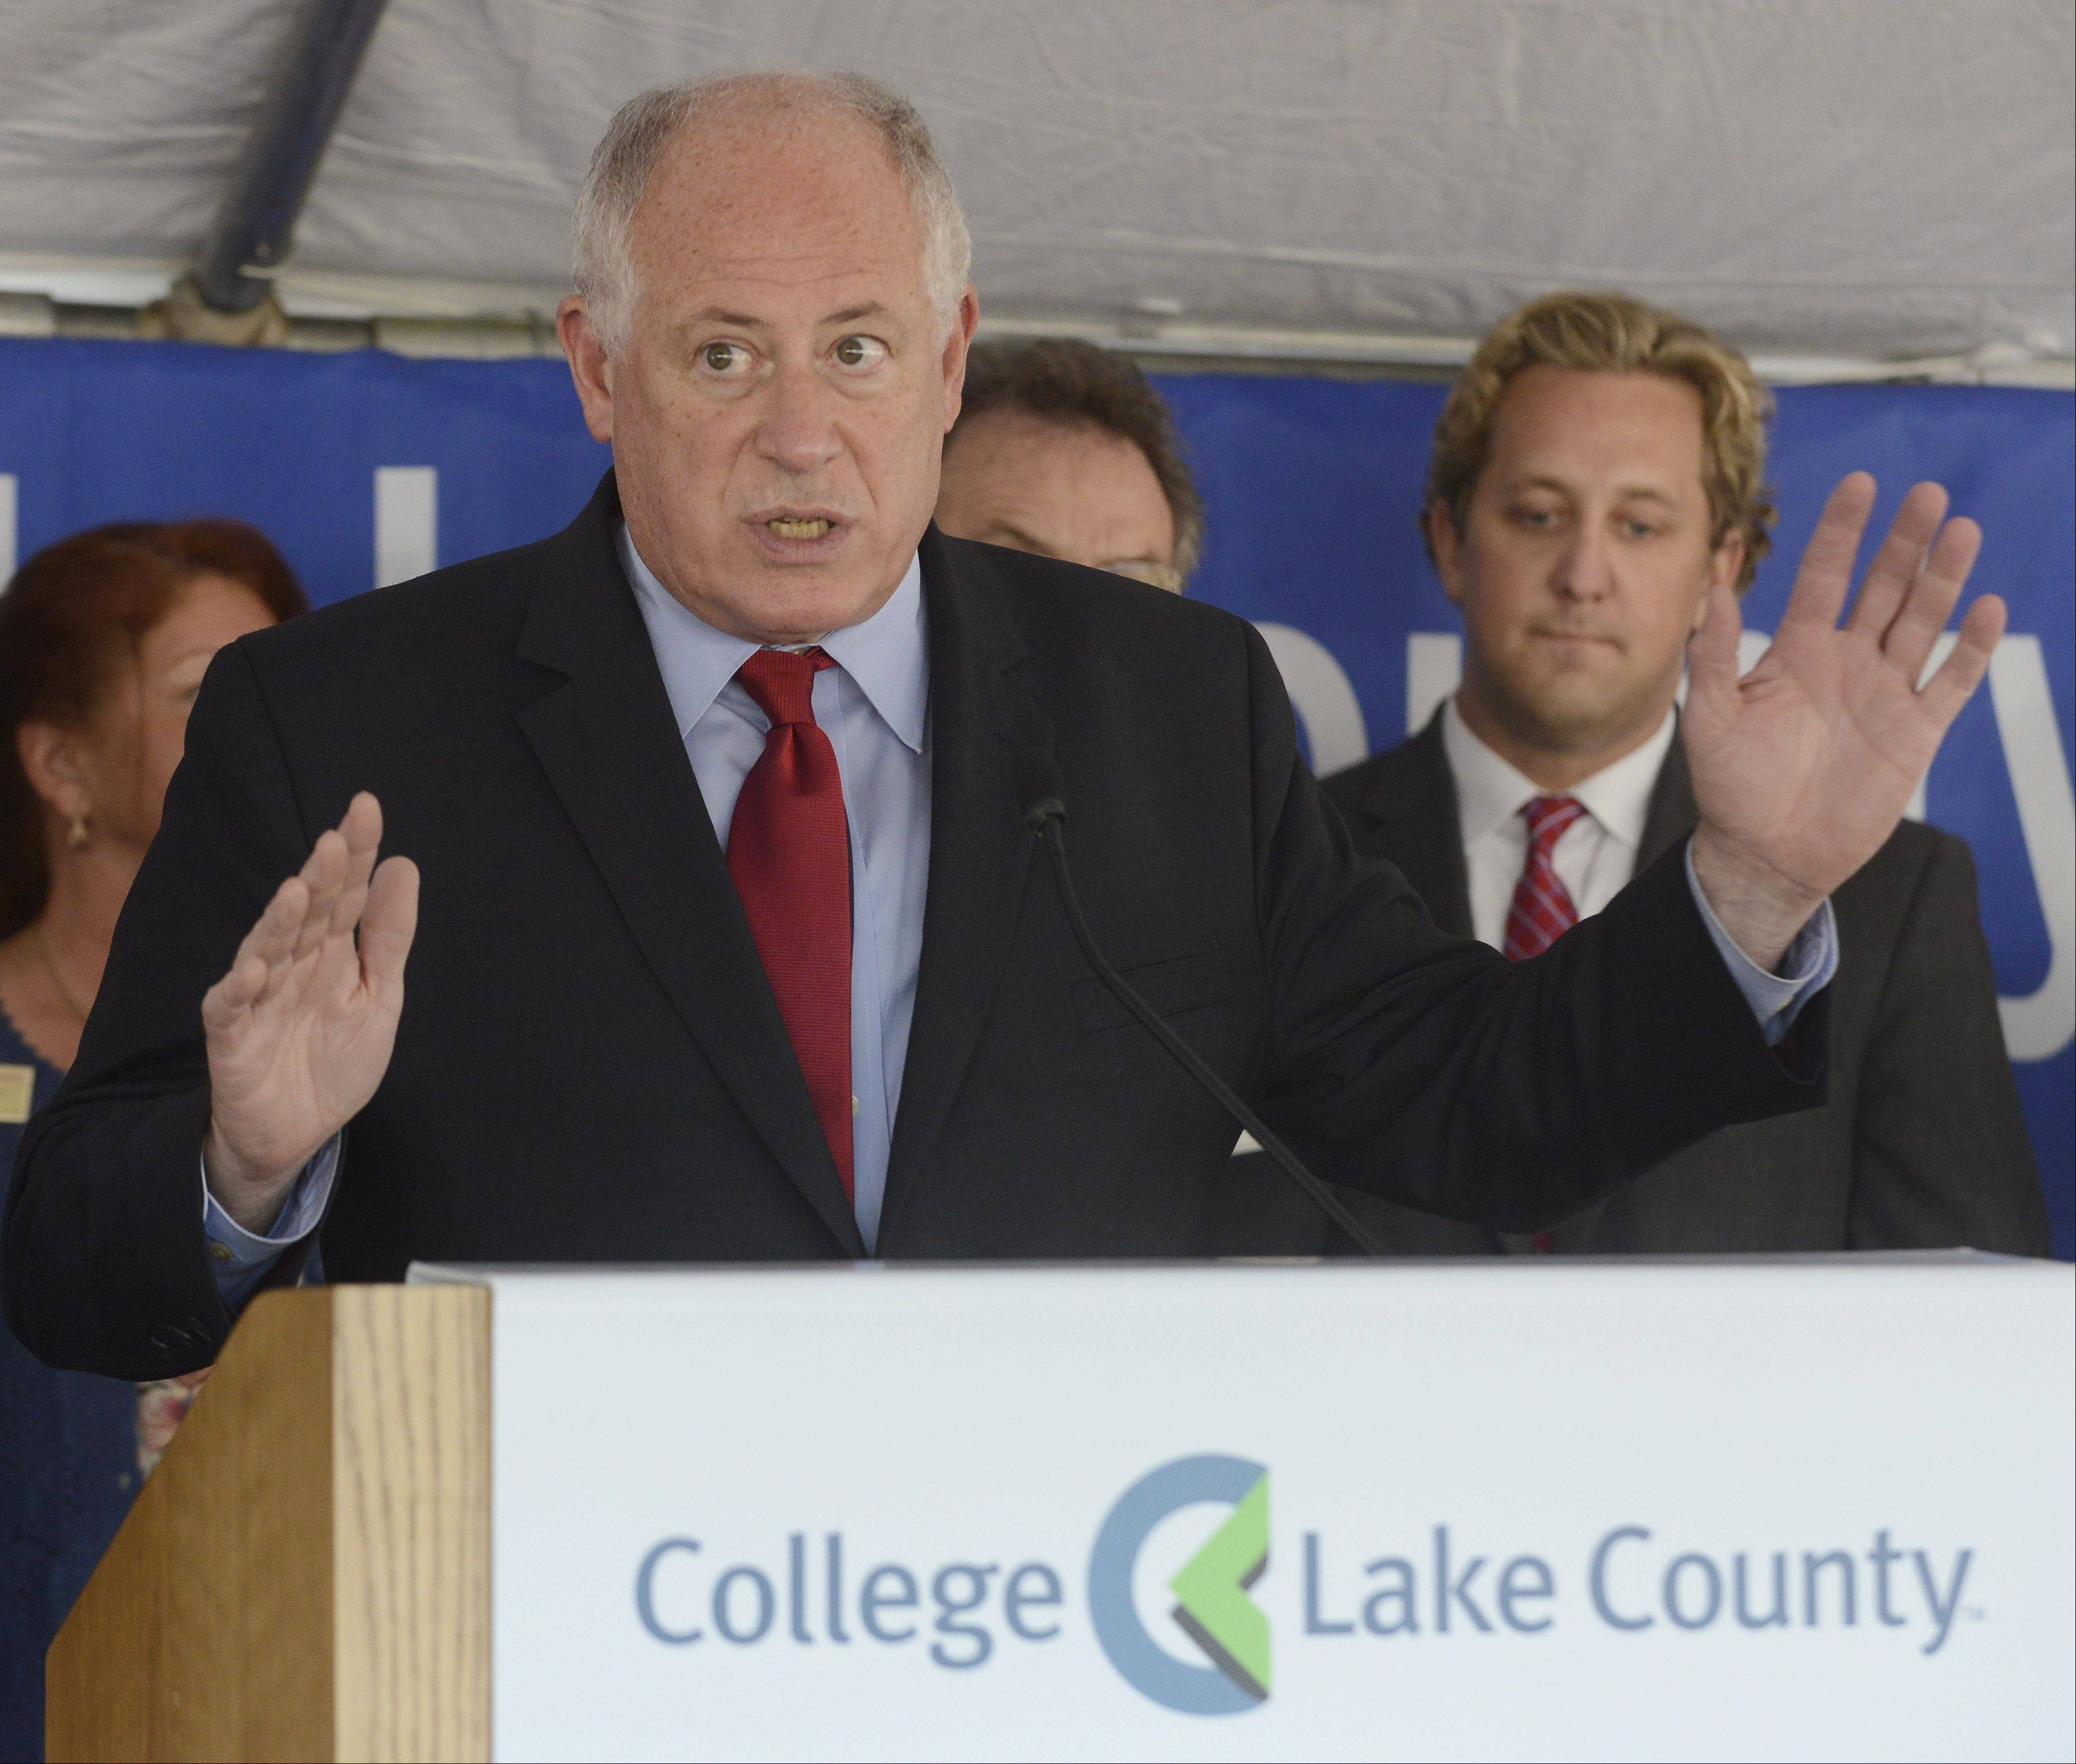 JOE LEWNARD/jlewnard@dailyherald.comGov. Pat Quinn was among the dignitaries for an announcement Thursday on the state releasing $36 million for expansion of College of Lake County's downtown Waukegan campus.